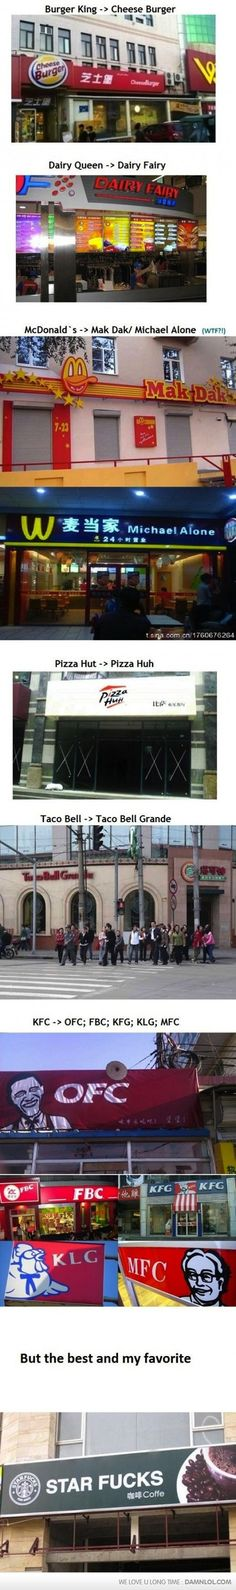 39 Best Hilarious Content images in 2012   Funny pictures